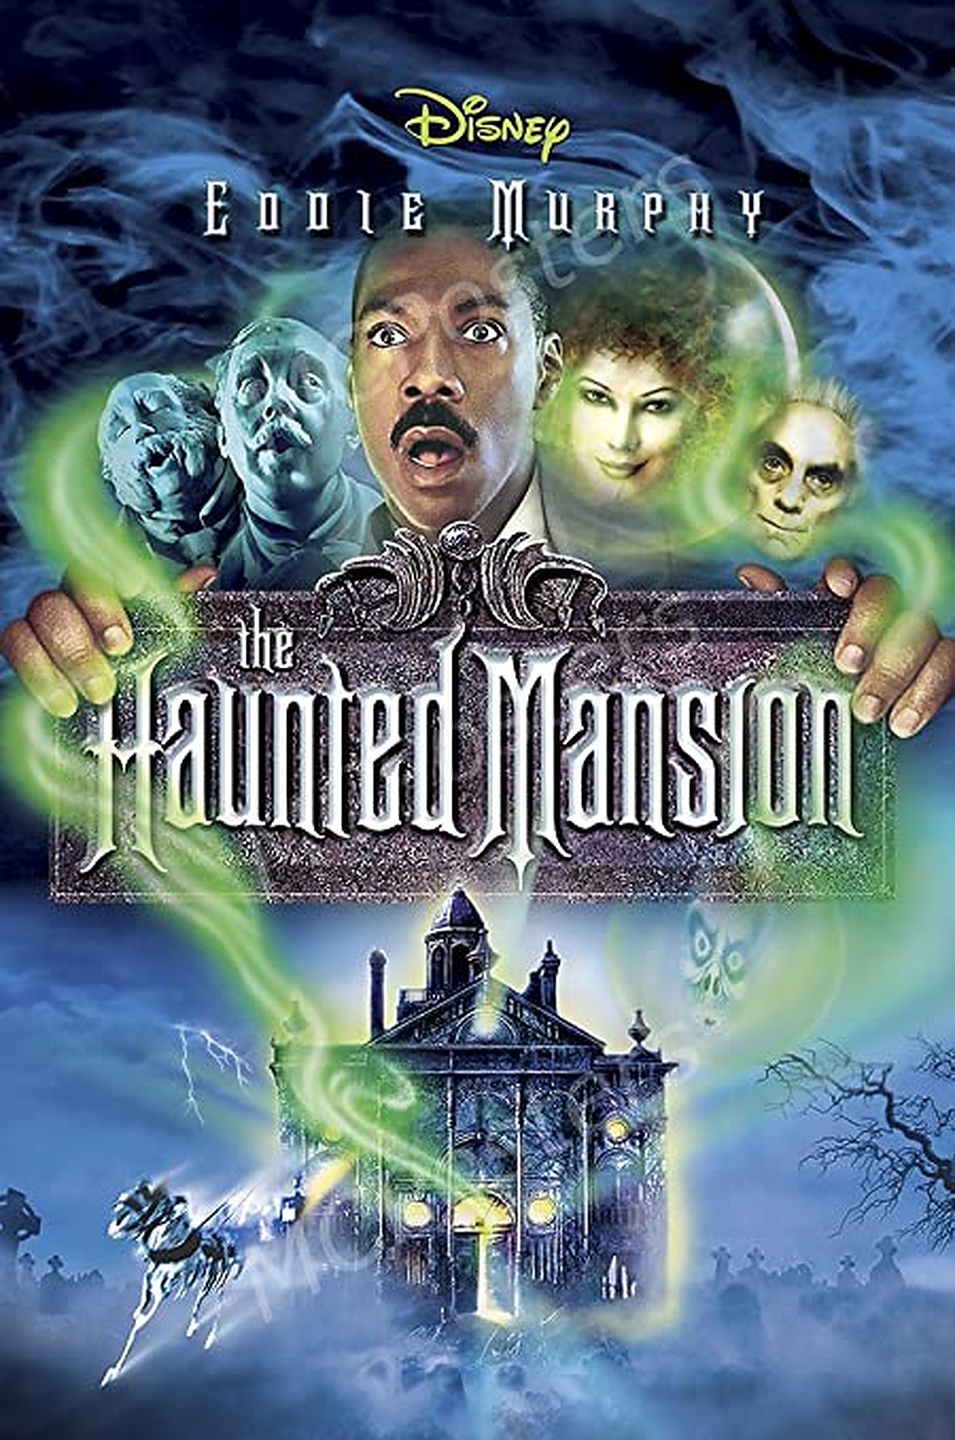 """<p>When real estate agent Jim Evers (<strong>Eddie Murphy</strong>) and his family decide to take a vacation, they wind up stopping at a super-creepy mansion. Tasked with trying to sell the spooky residence, Jim and his family soon discover that it's haunted by Master Gracey (<strong>Nathaniel Parker</strong>) and that escaping from the haunted grounds is no easy feat.</p><p><a class=""""link rapid-noclick-resp"""" href=""""https://go.redirectingat.com?id=74968X1596630&url=https%3A%2F%2Fwww.disneyplus.com%2Fmovies%2Fthe-haunted-mansion%2F6RcGqdevf15z&sref=https%3A%2F%2Fwww.goodhousekeeping.com%2Flife%2Fentertainment%2Fg33651563%2Fdisney-halloween-movies%2F"""" rel=""""nofollow noopener"""" target=""""_blank"""" data-ylk=""""slk:WATCH NOW"""">WATCH NOW</a></p>"""